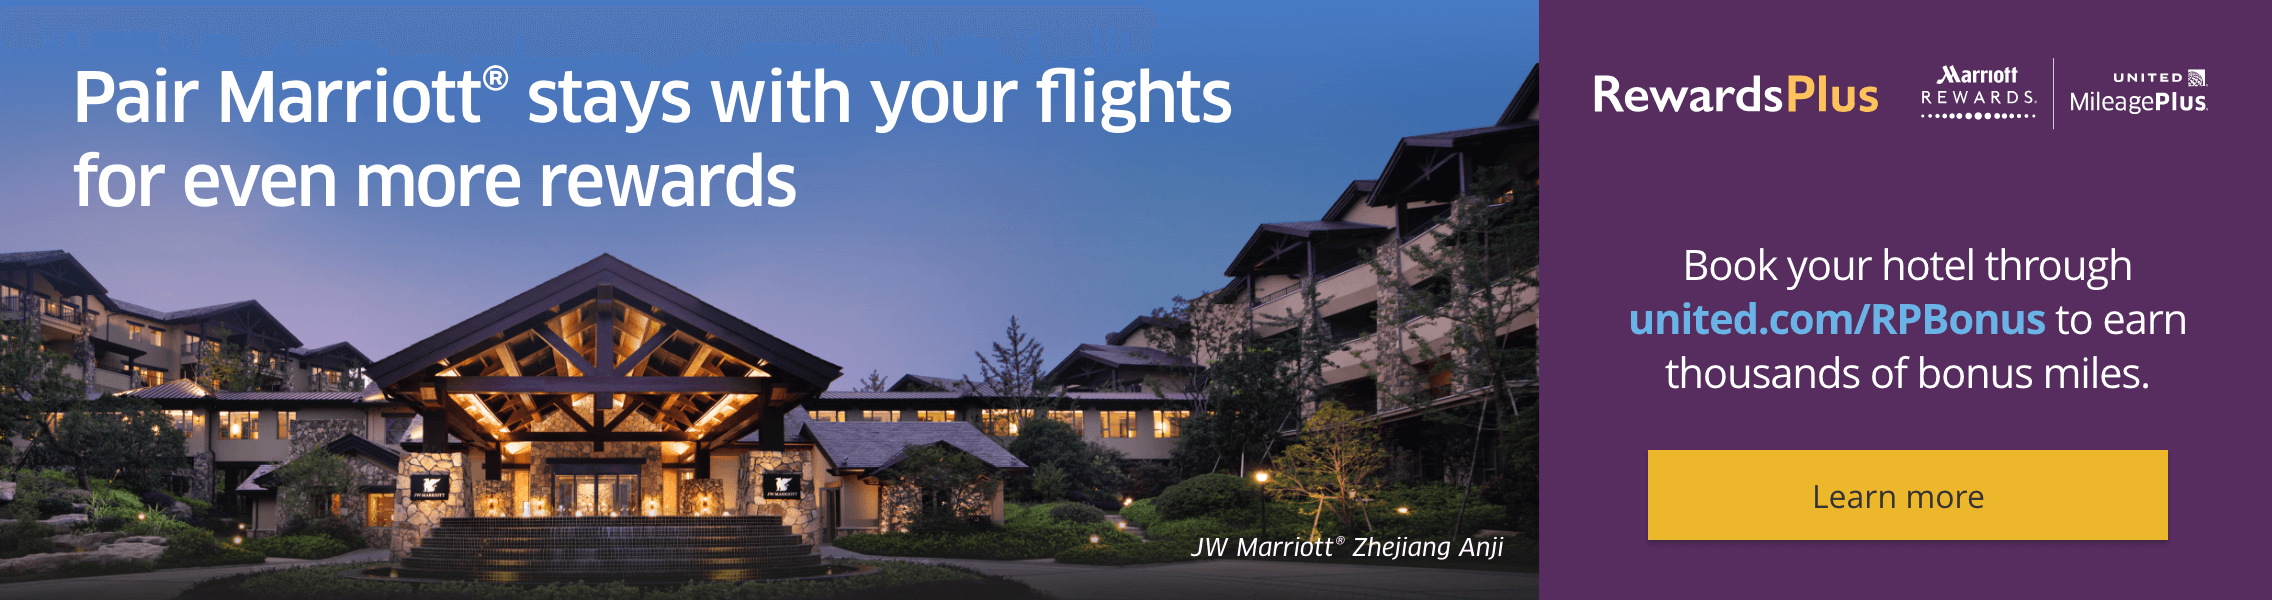 Pair Marriott stays with your flights for even more rewards. Book your hotel through unted.com/RPBonus to earn thousands of bonus miles. Learn more